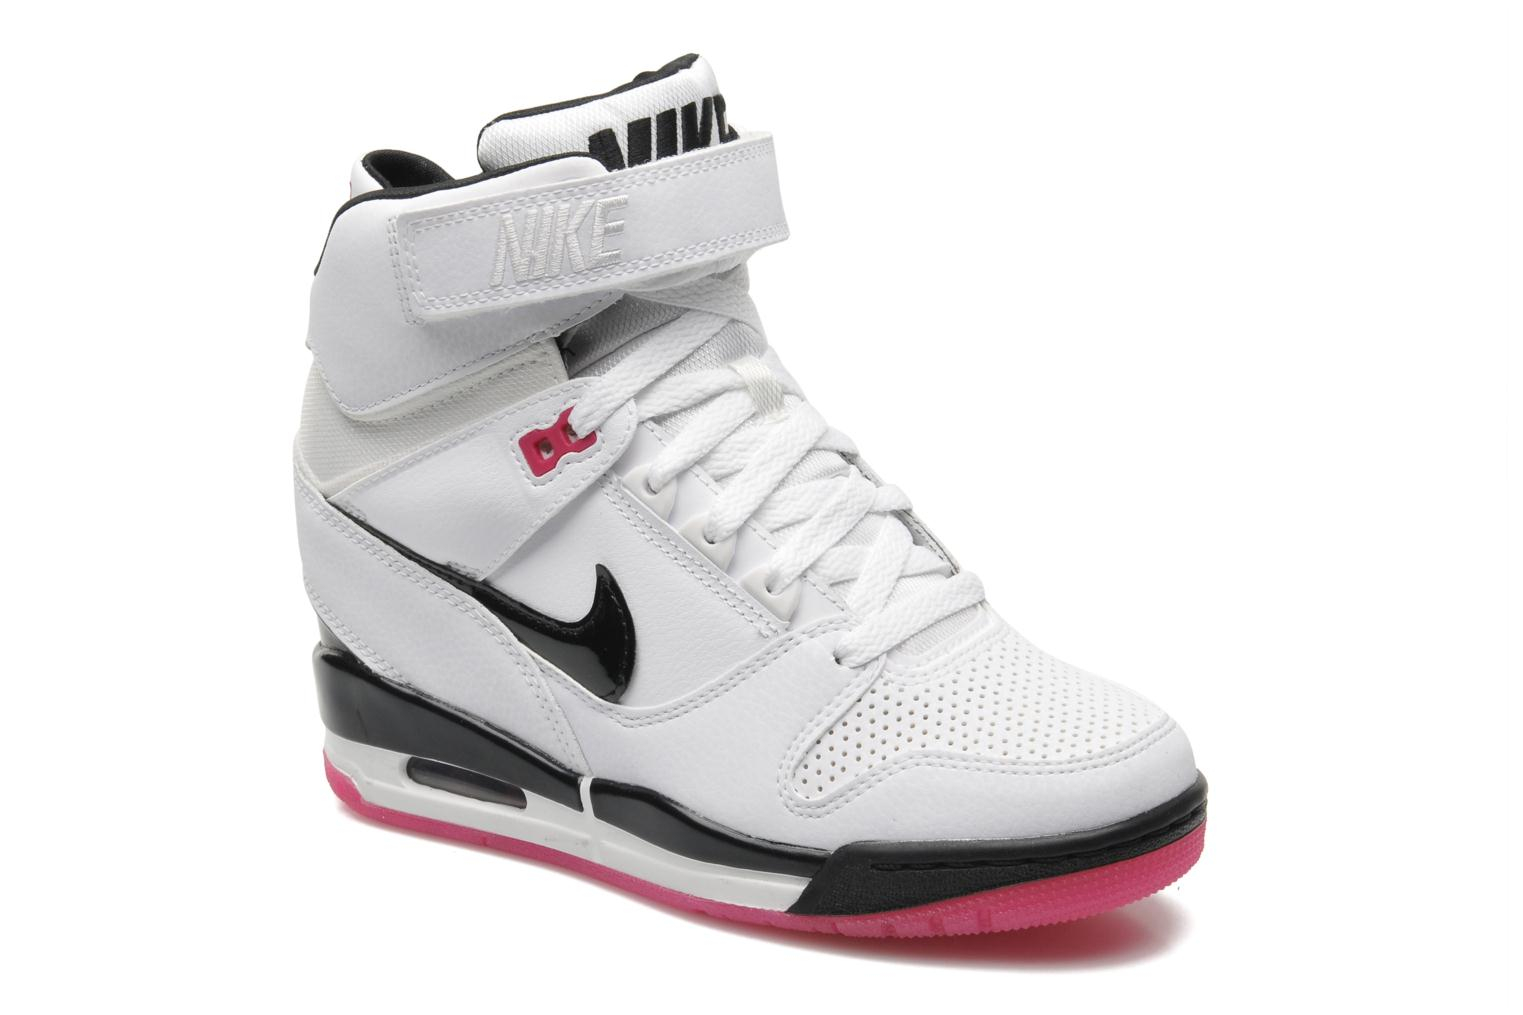 nike baskets air revolution sky hi femme blanche